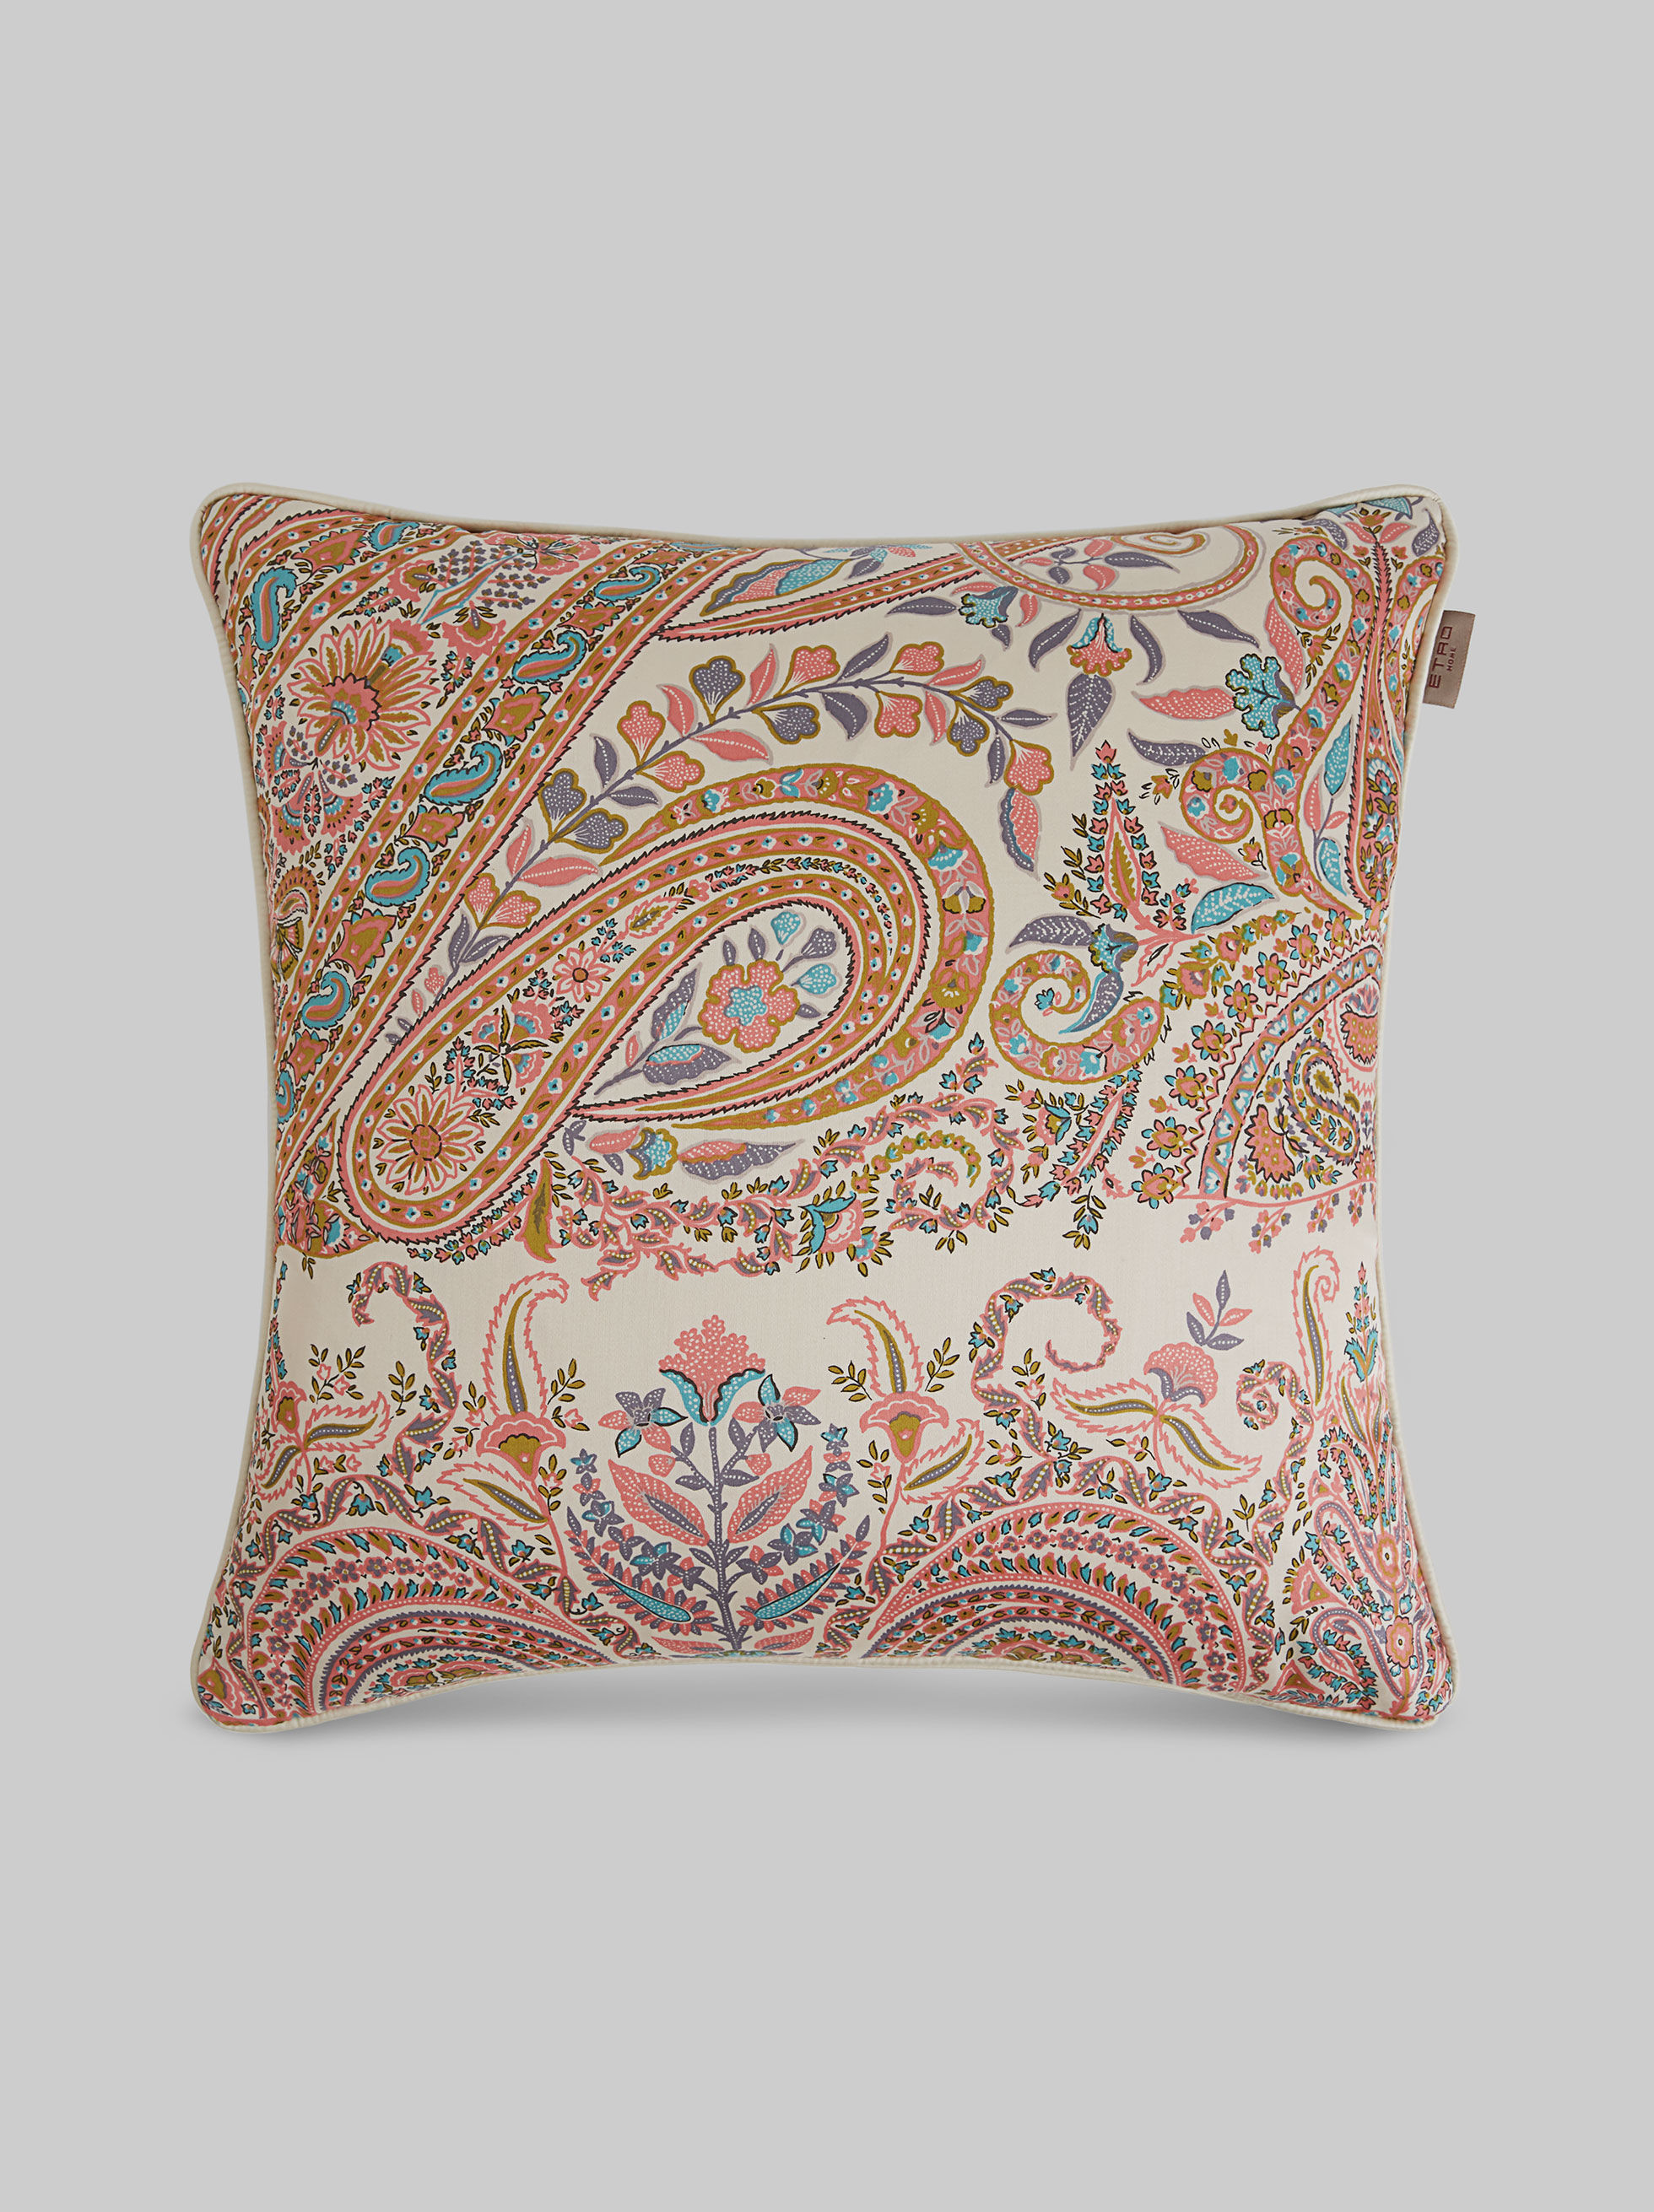 FLORAL PAISLEY PRINT SATIN CUSHION